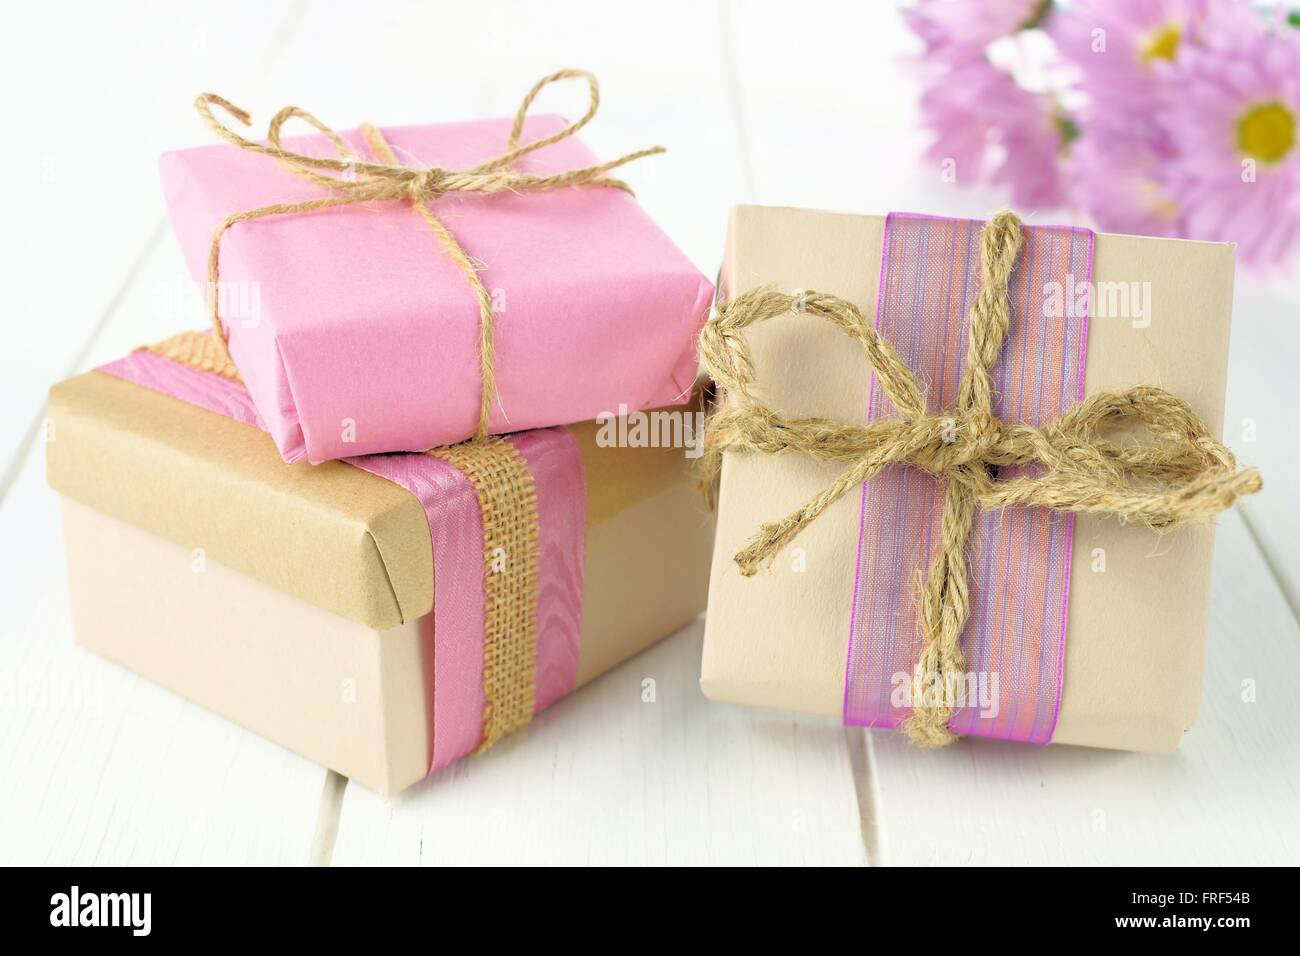 Handmade Gift Stock Photos & Handmade Gift Stock Images - Alamy